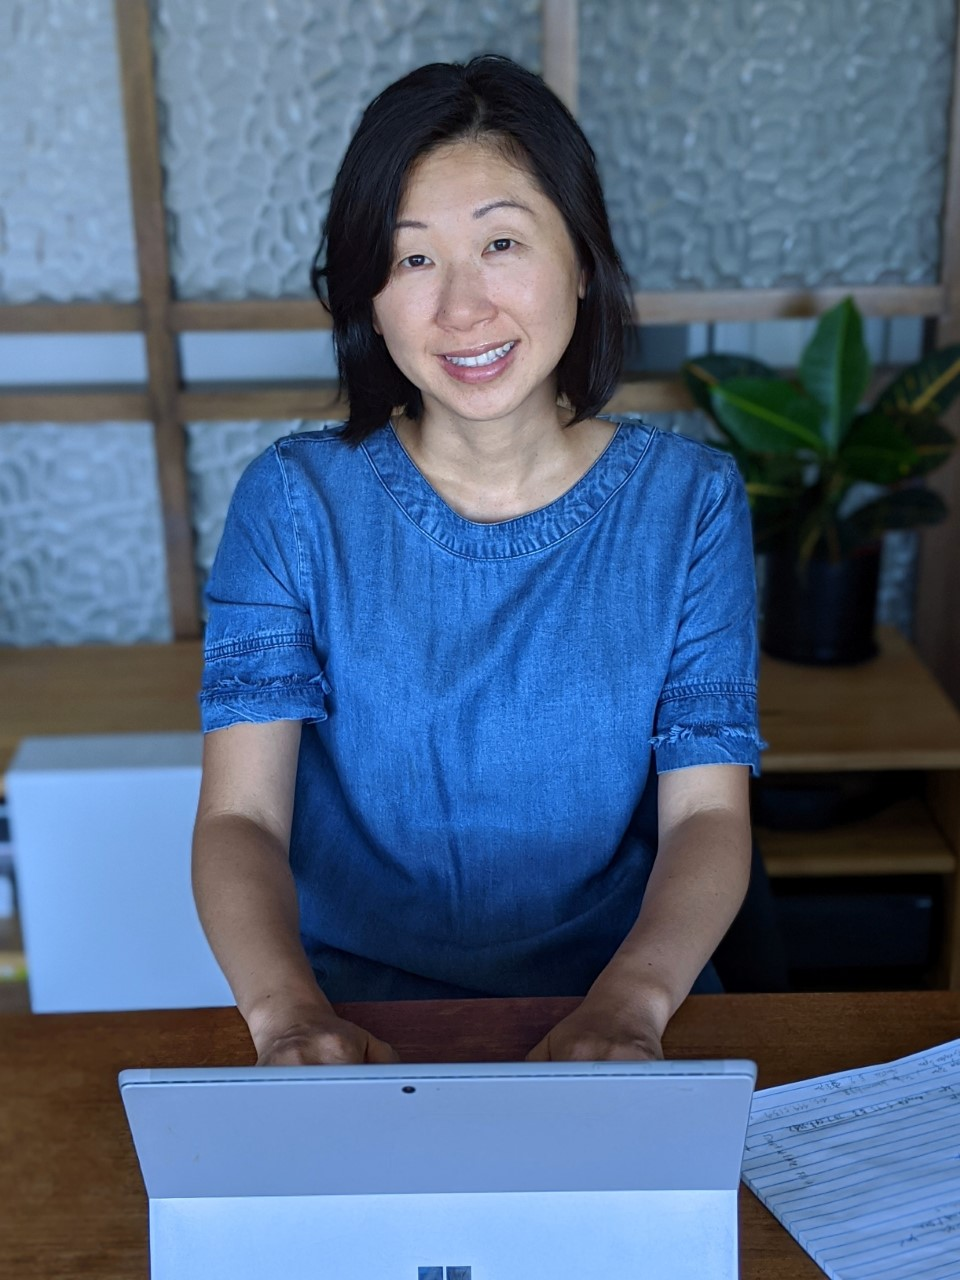 Agnes Hong sits at a desk, posing for a photo